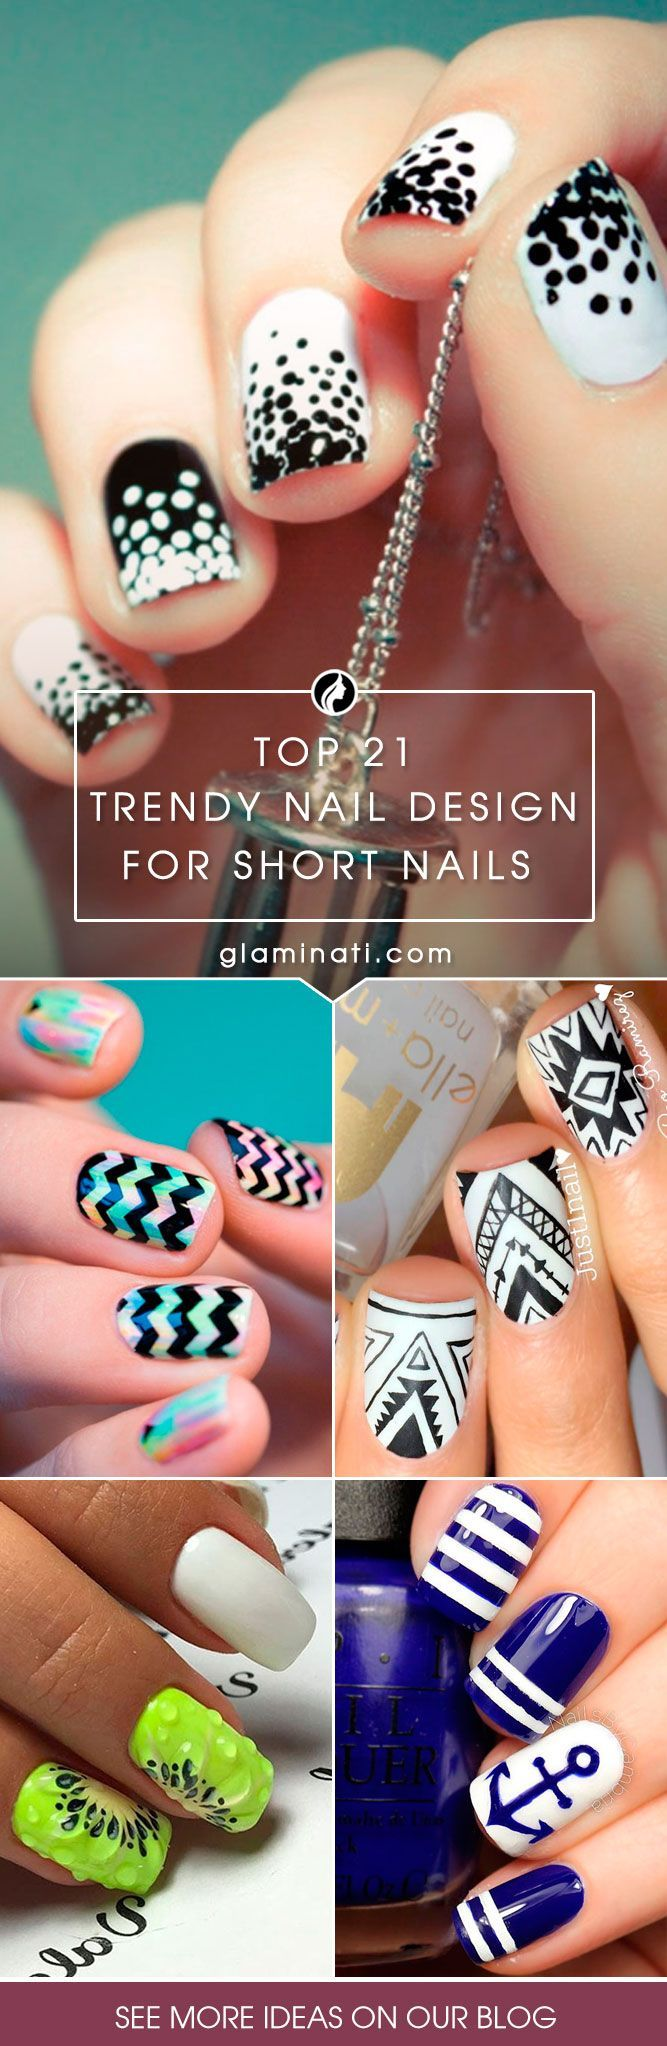 Top 24 Trendy Nail Designs For Short Nails Nail Design Pinterest